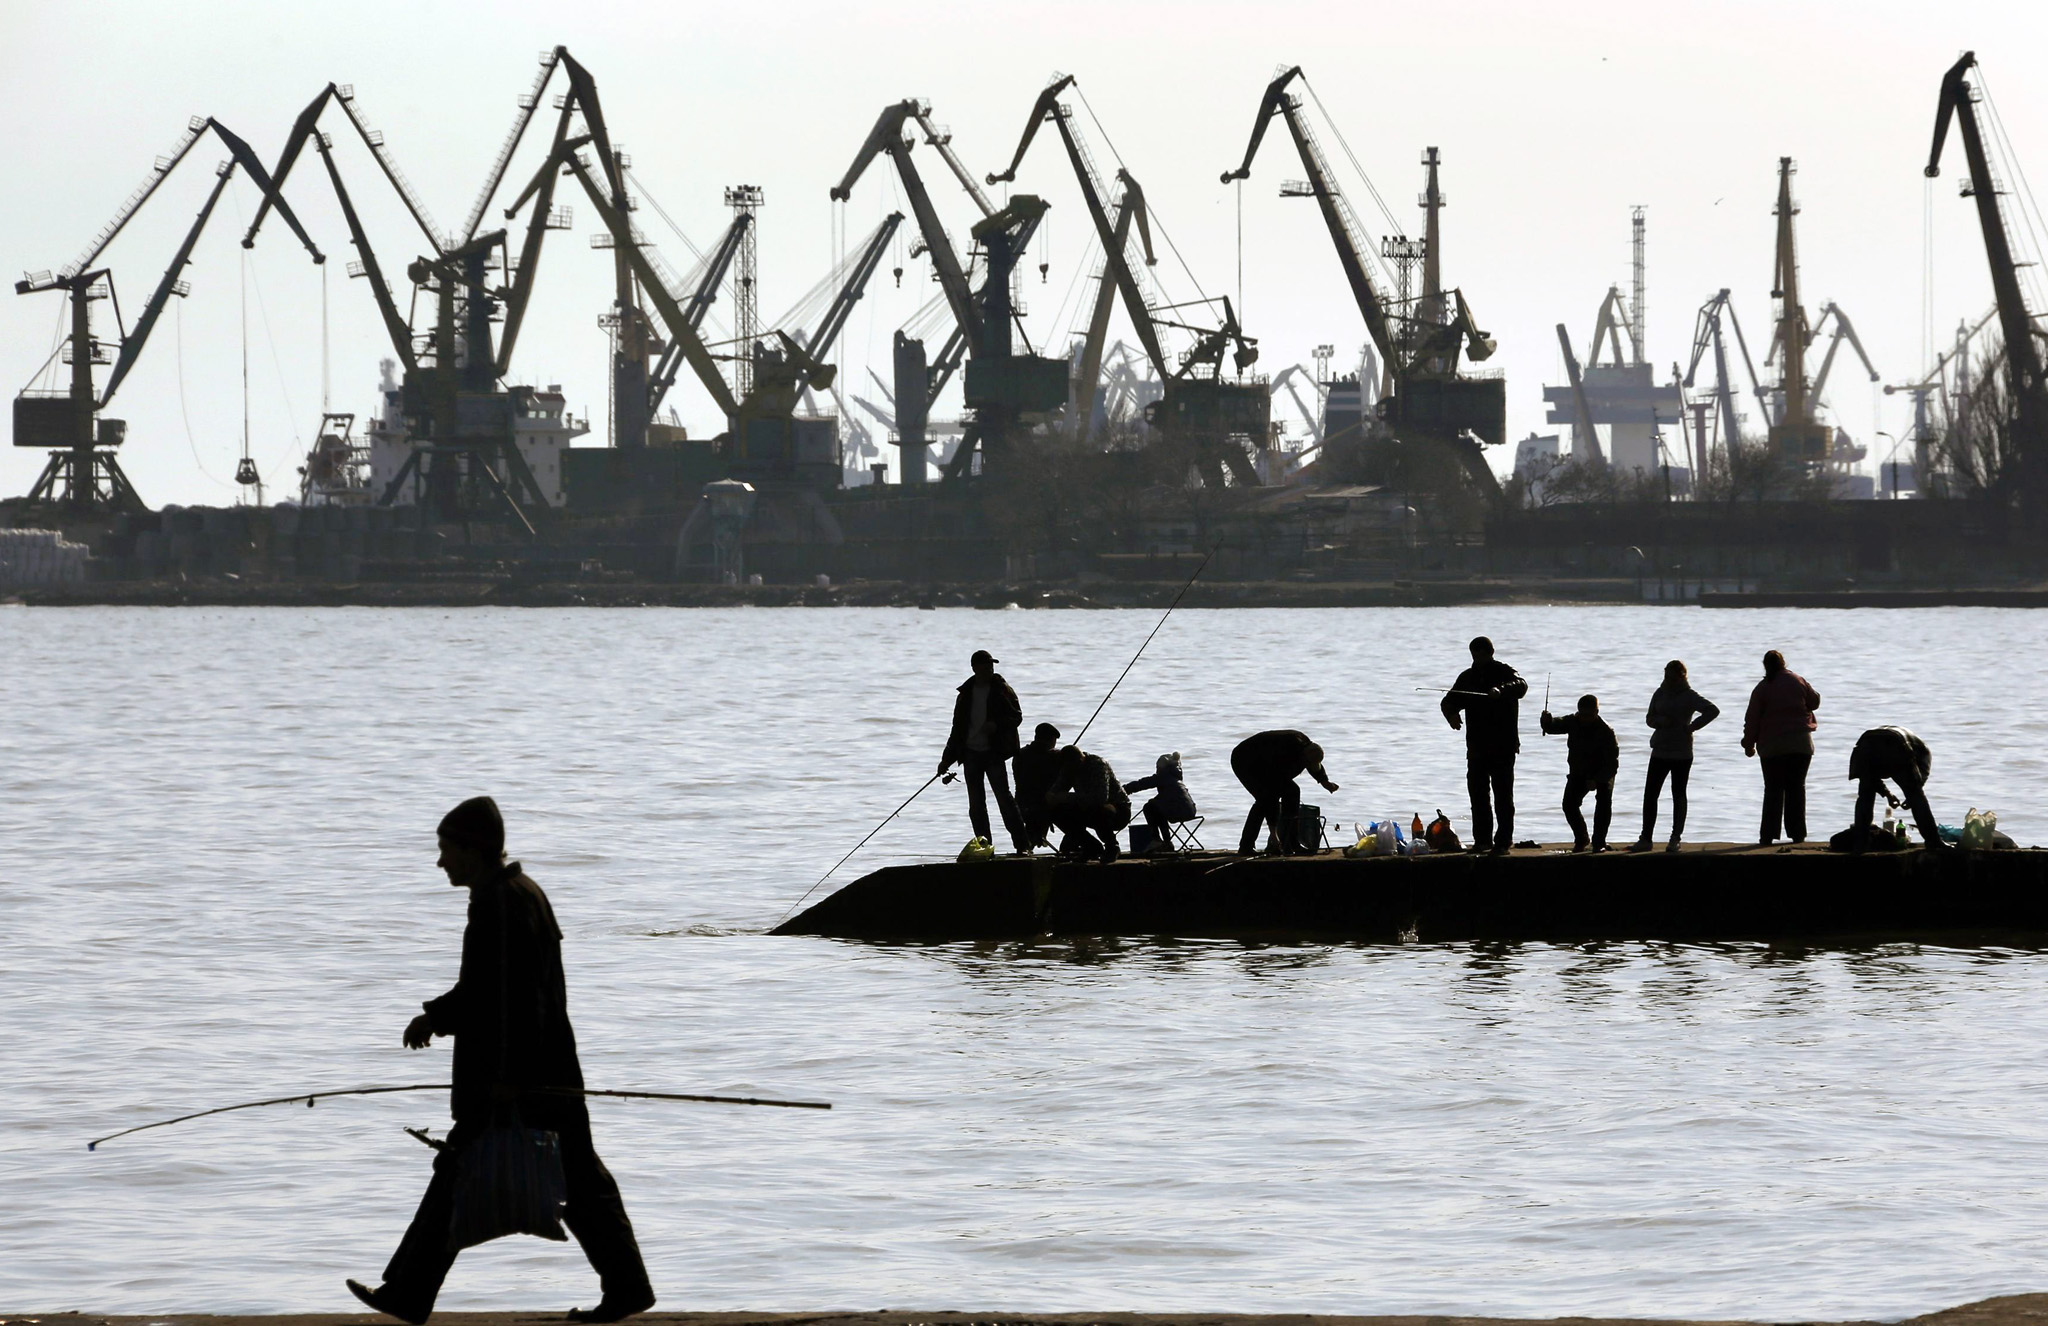 People fish on a pier at the port of Mariupol...People fish on a pier at the port of Mariupol, located on the north of the Sea of Azov in eastern Ukraine March 26, 2014. REUTERS/Yannis Behrakis